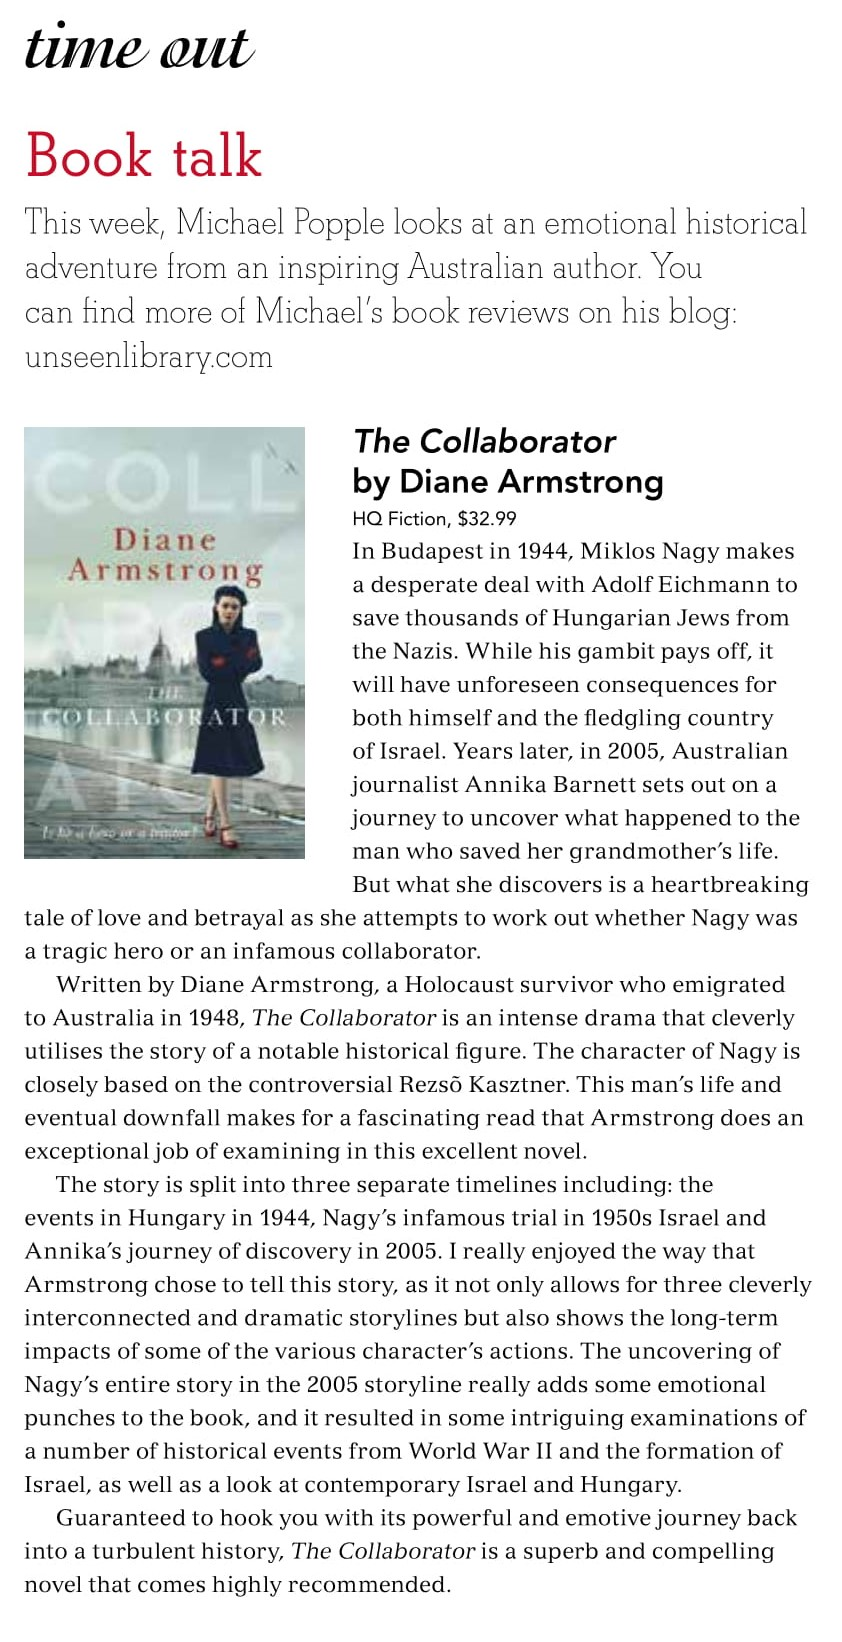 Canberra Weekly Review - 15 August 2019 - The Collaborator-1 (Cropped).jpg